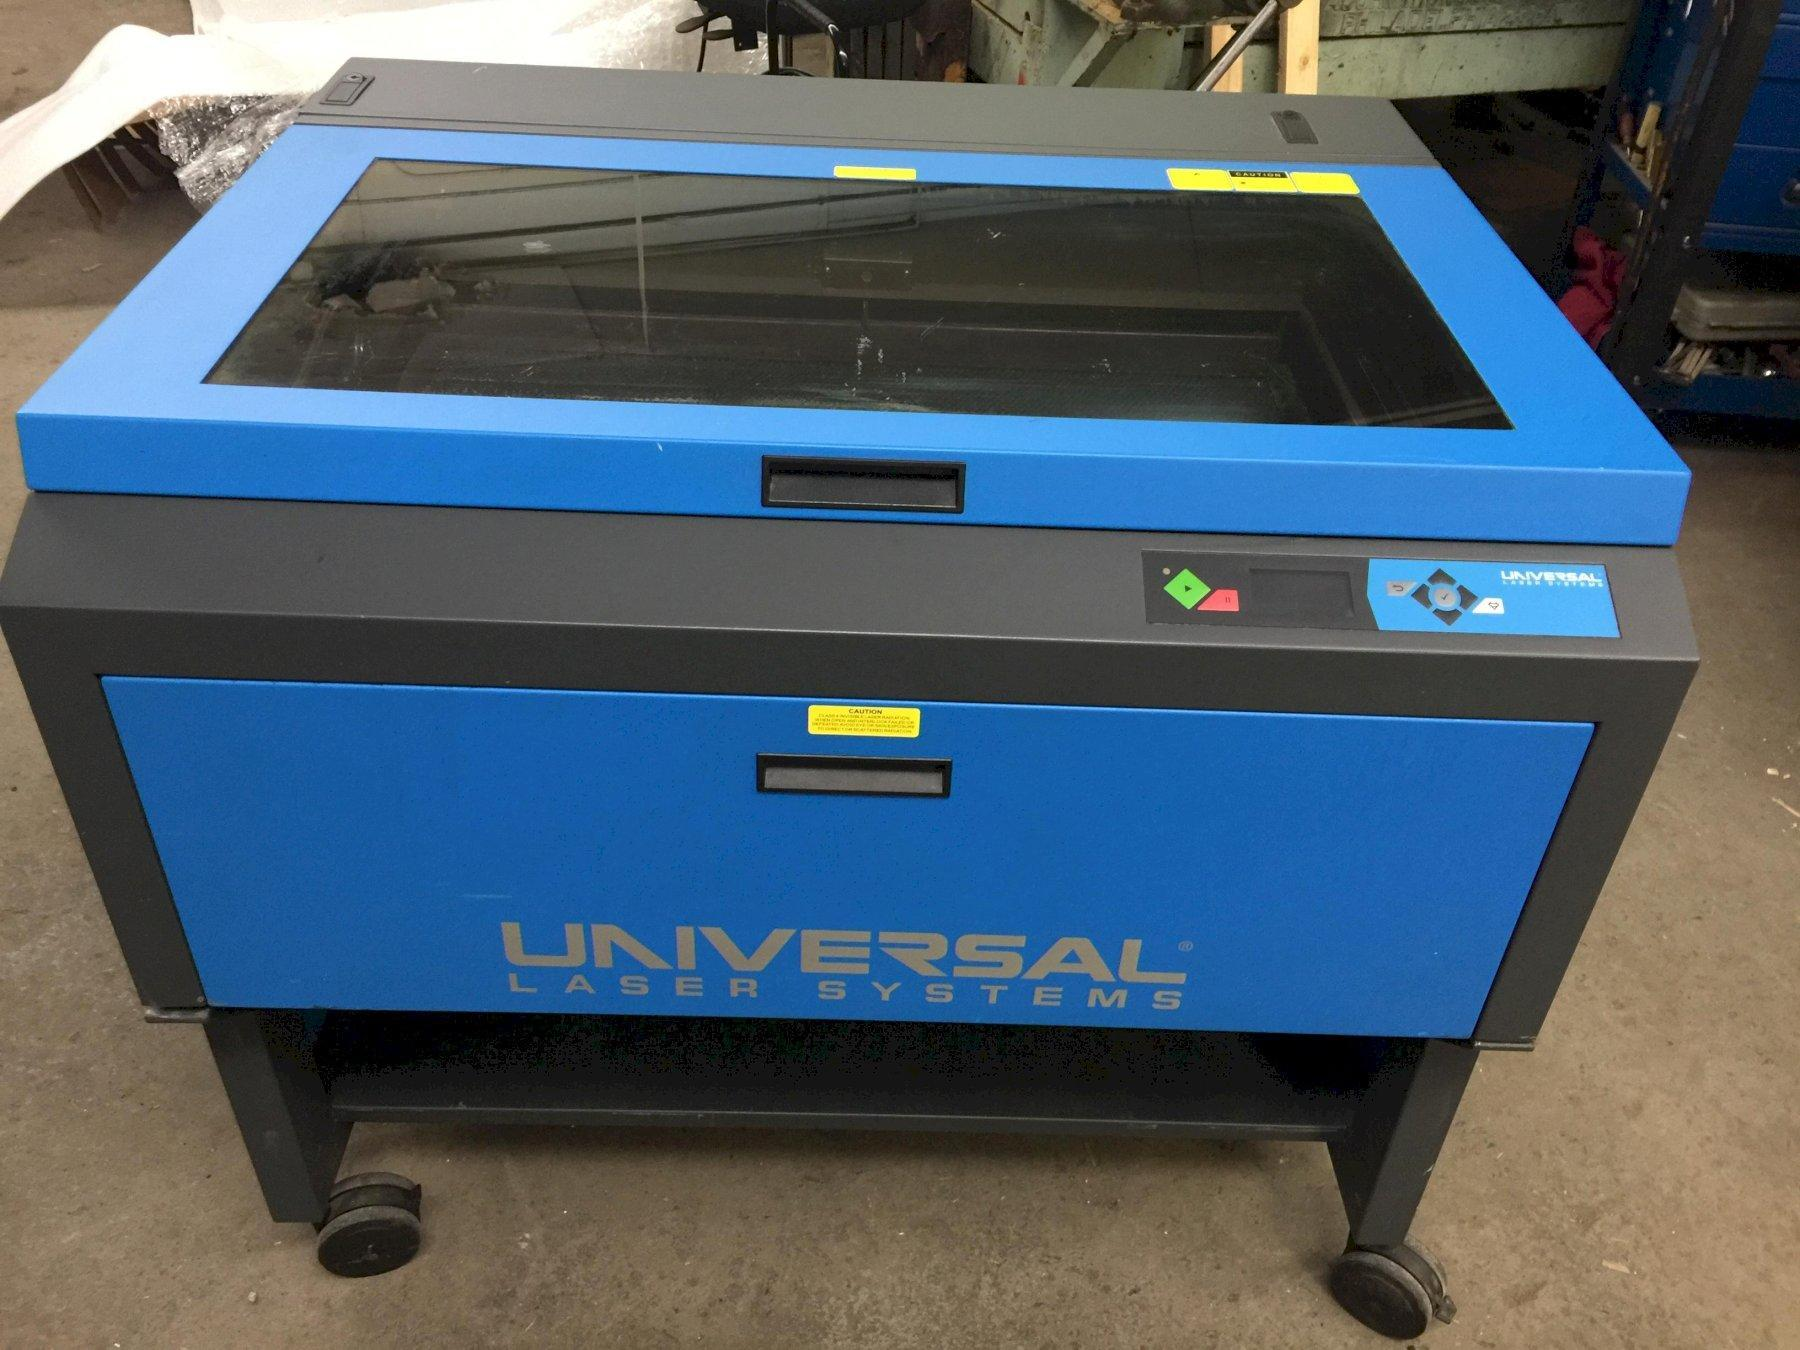 Universal Laser System PLS 6.75 Engraving Laser 2016 with: Coaxial Air Assist and 18